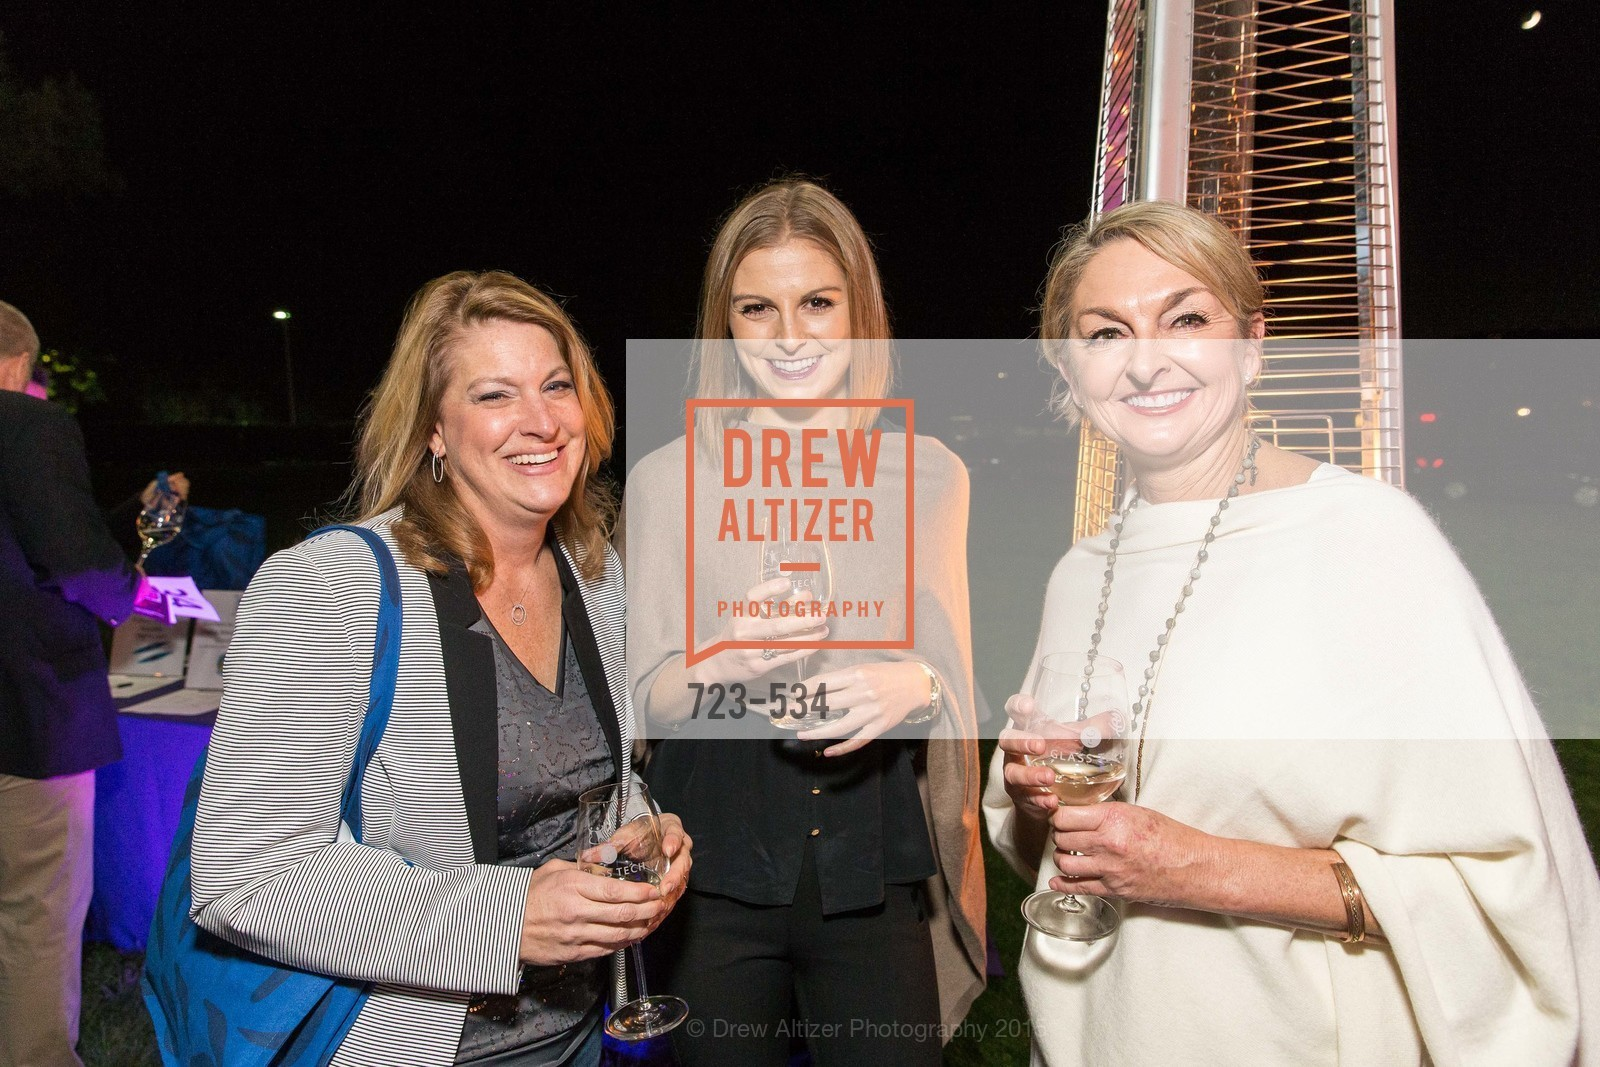 Brit Kelleher, Kirsten Calhoun, Debbie Calhoun, Perfecting Pairings - Food, Wine and Stories, Chateau St Jean, Kenwood, November 14th, 2015,Drew Altizer, Drew Altizer Photography, full-service agency, private events, San Francisco photographer, photographer california